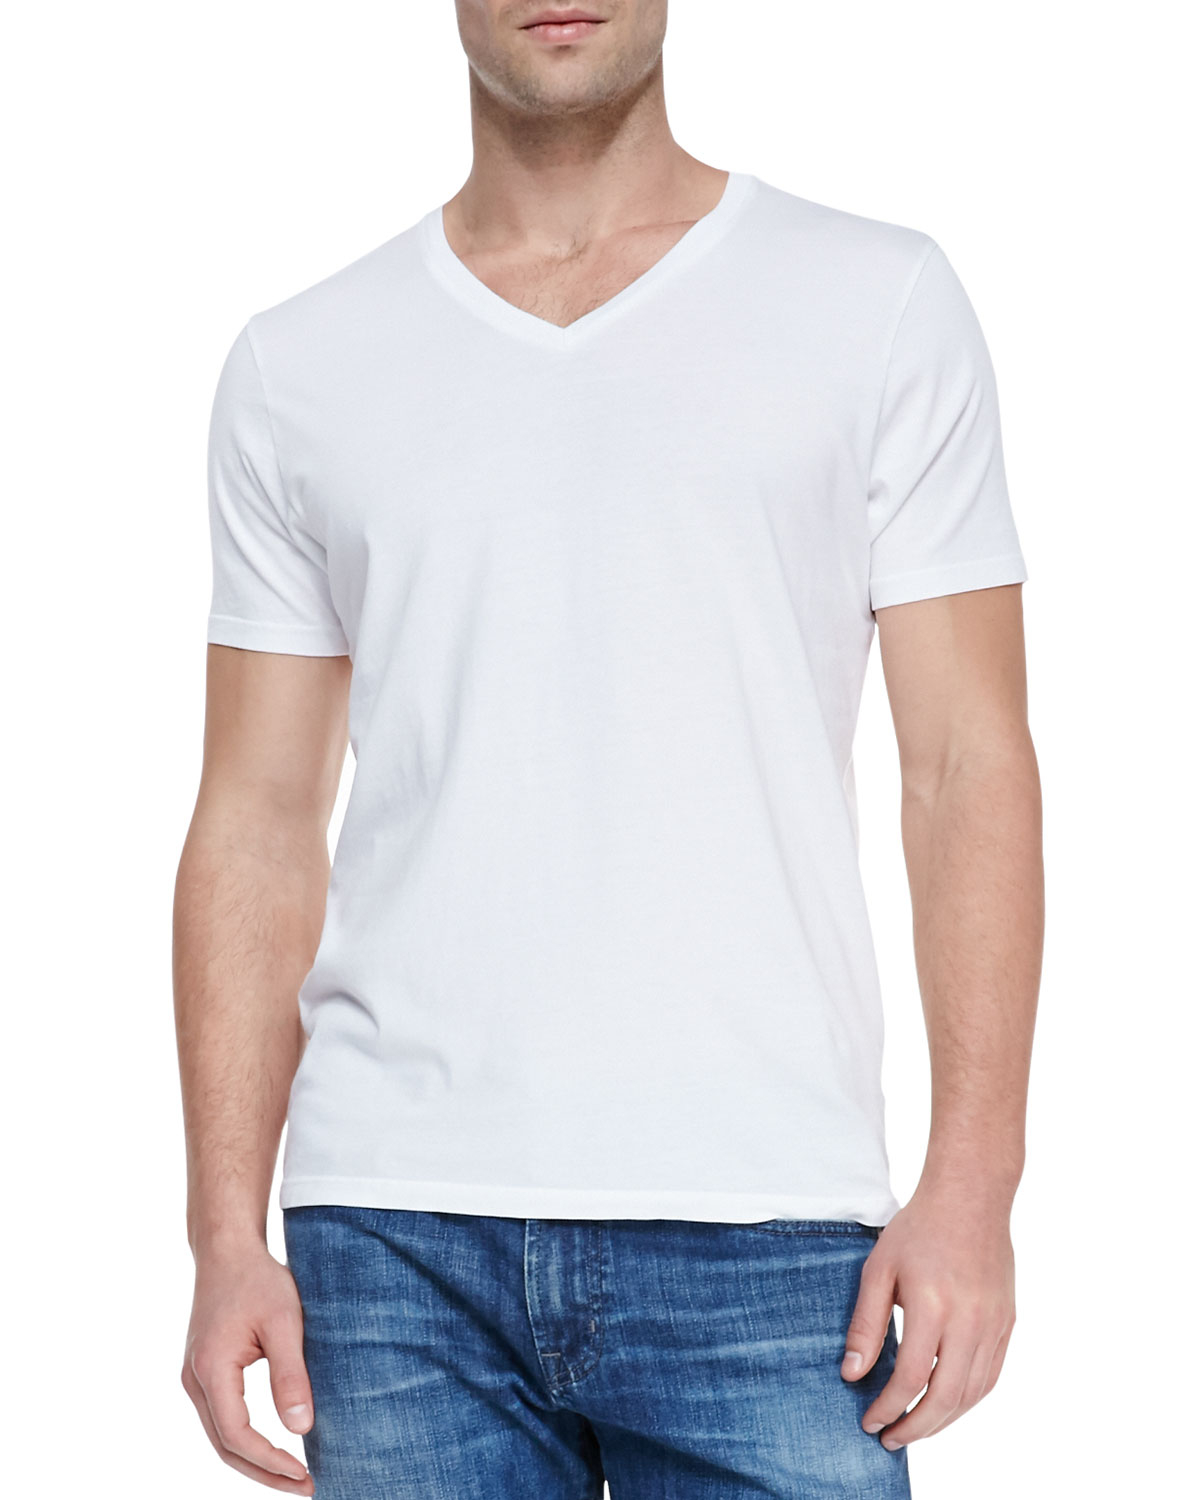 ag adriano goldschmied short sleeved v neck t shirt in white for men lyst. Black Bedroom Furniture Sets. Home Design Ideas